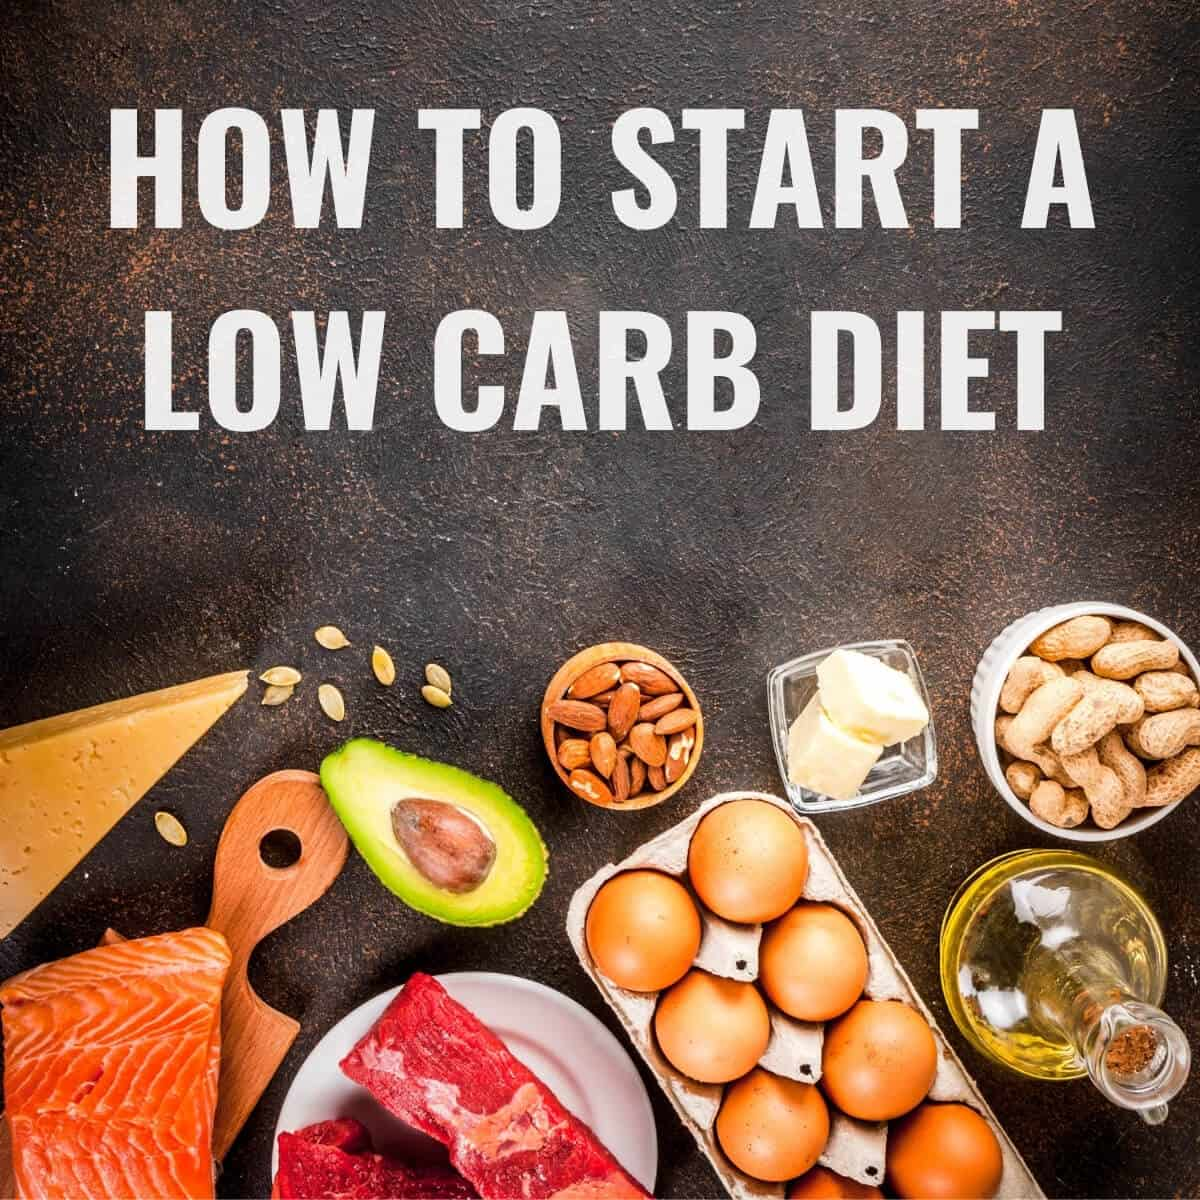 how to start a low carb diet featured image